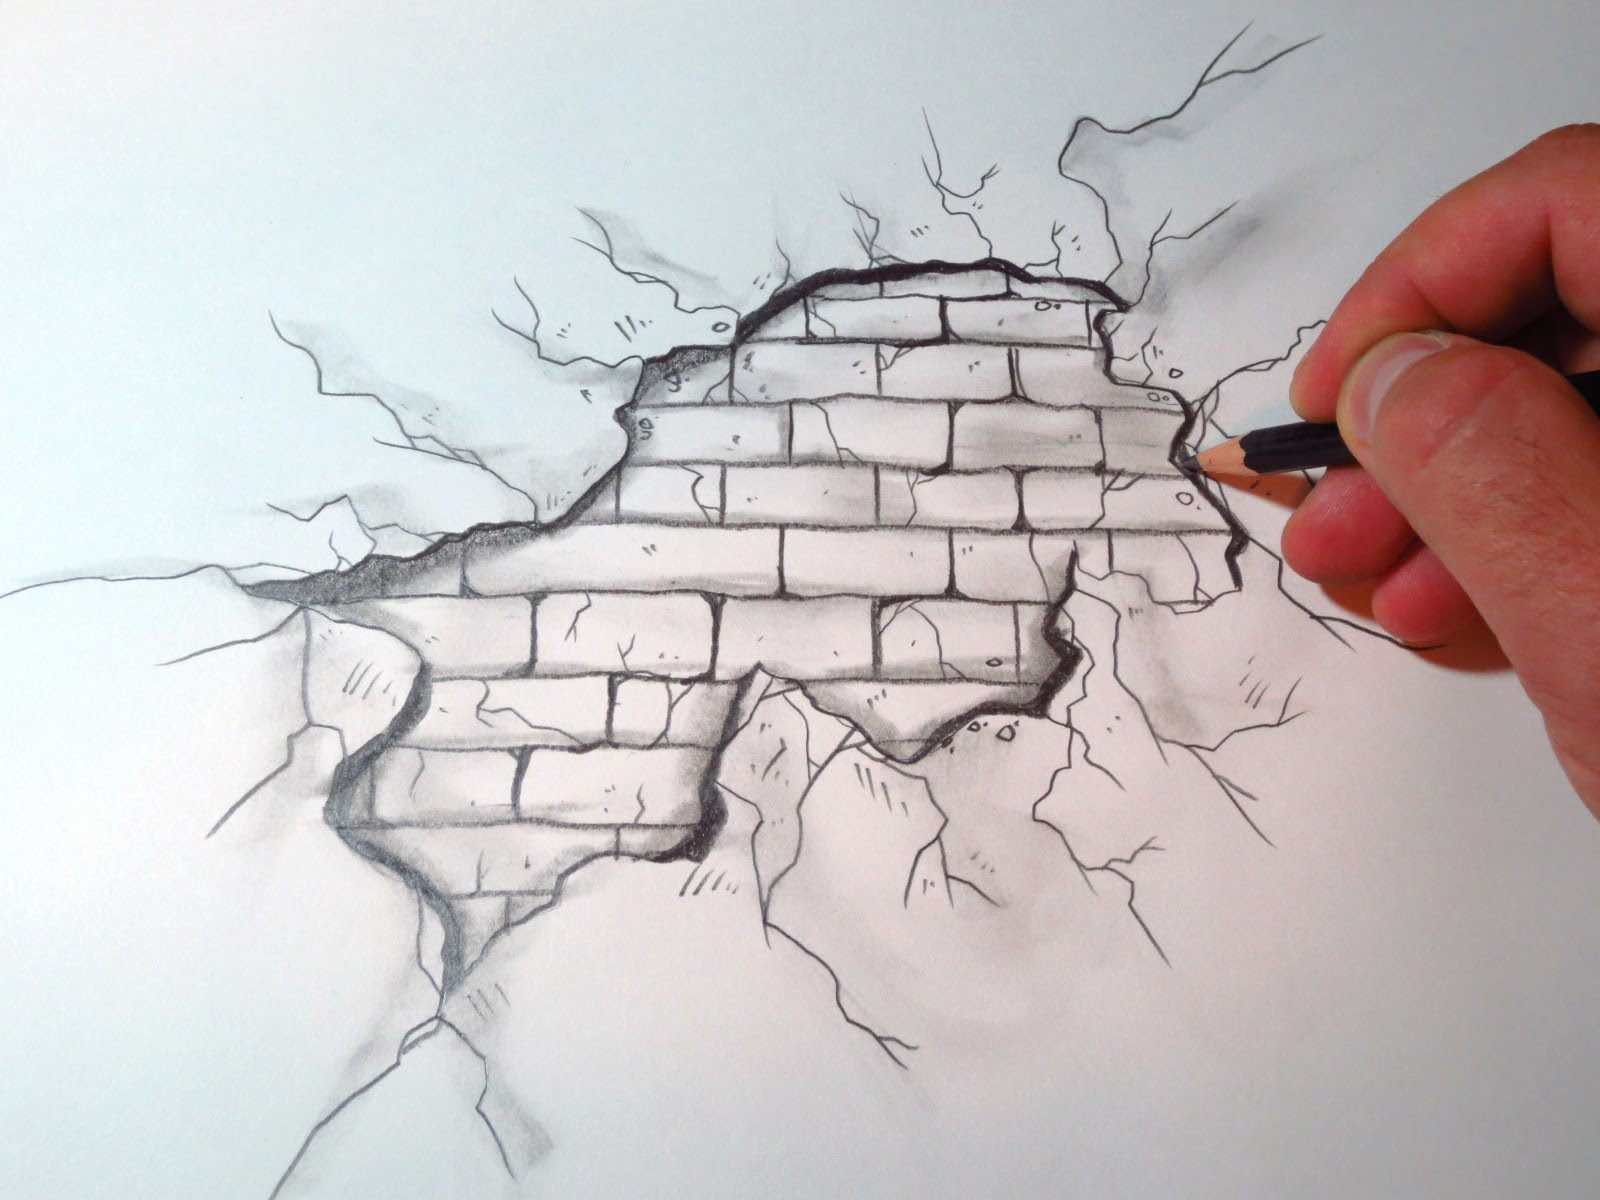 Drawn wall YouTube To A Original) Wall